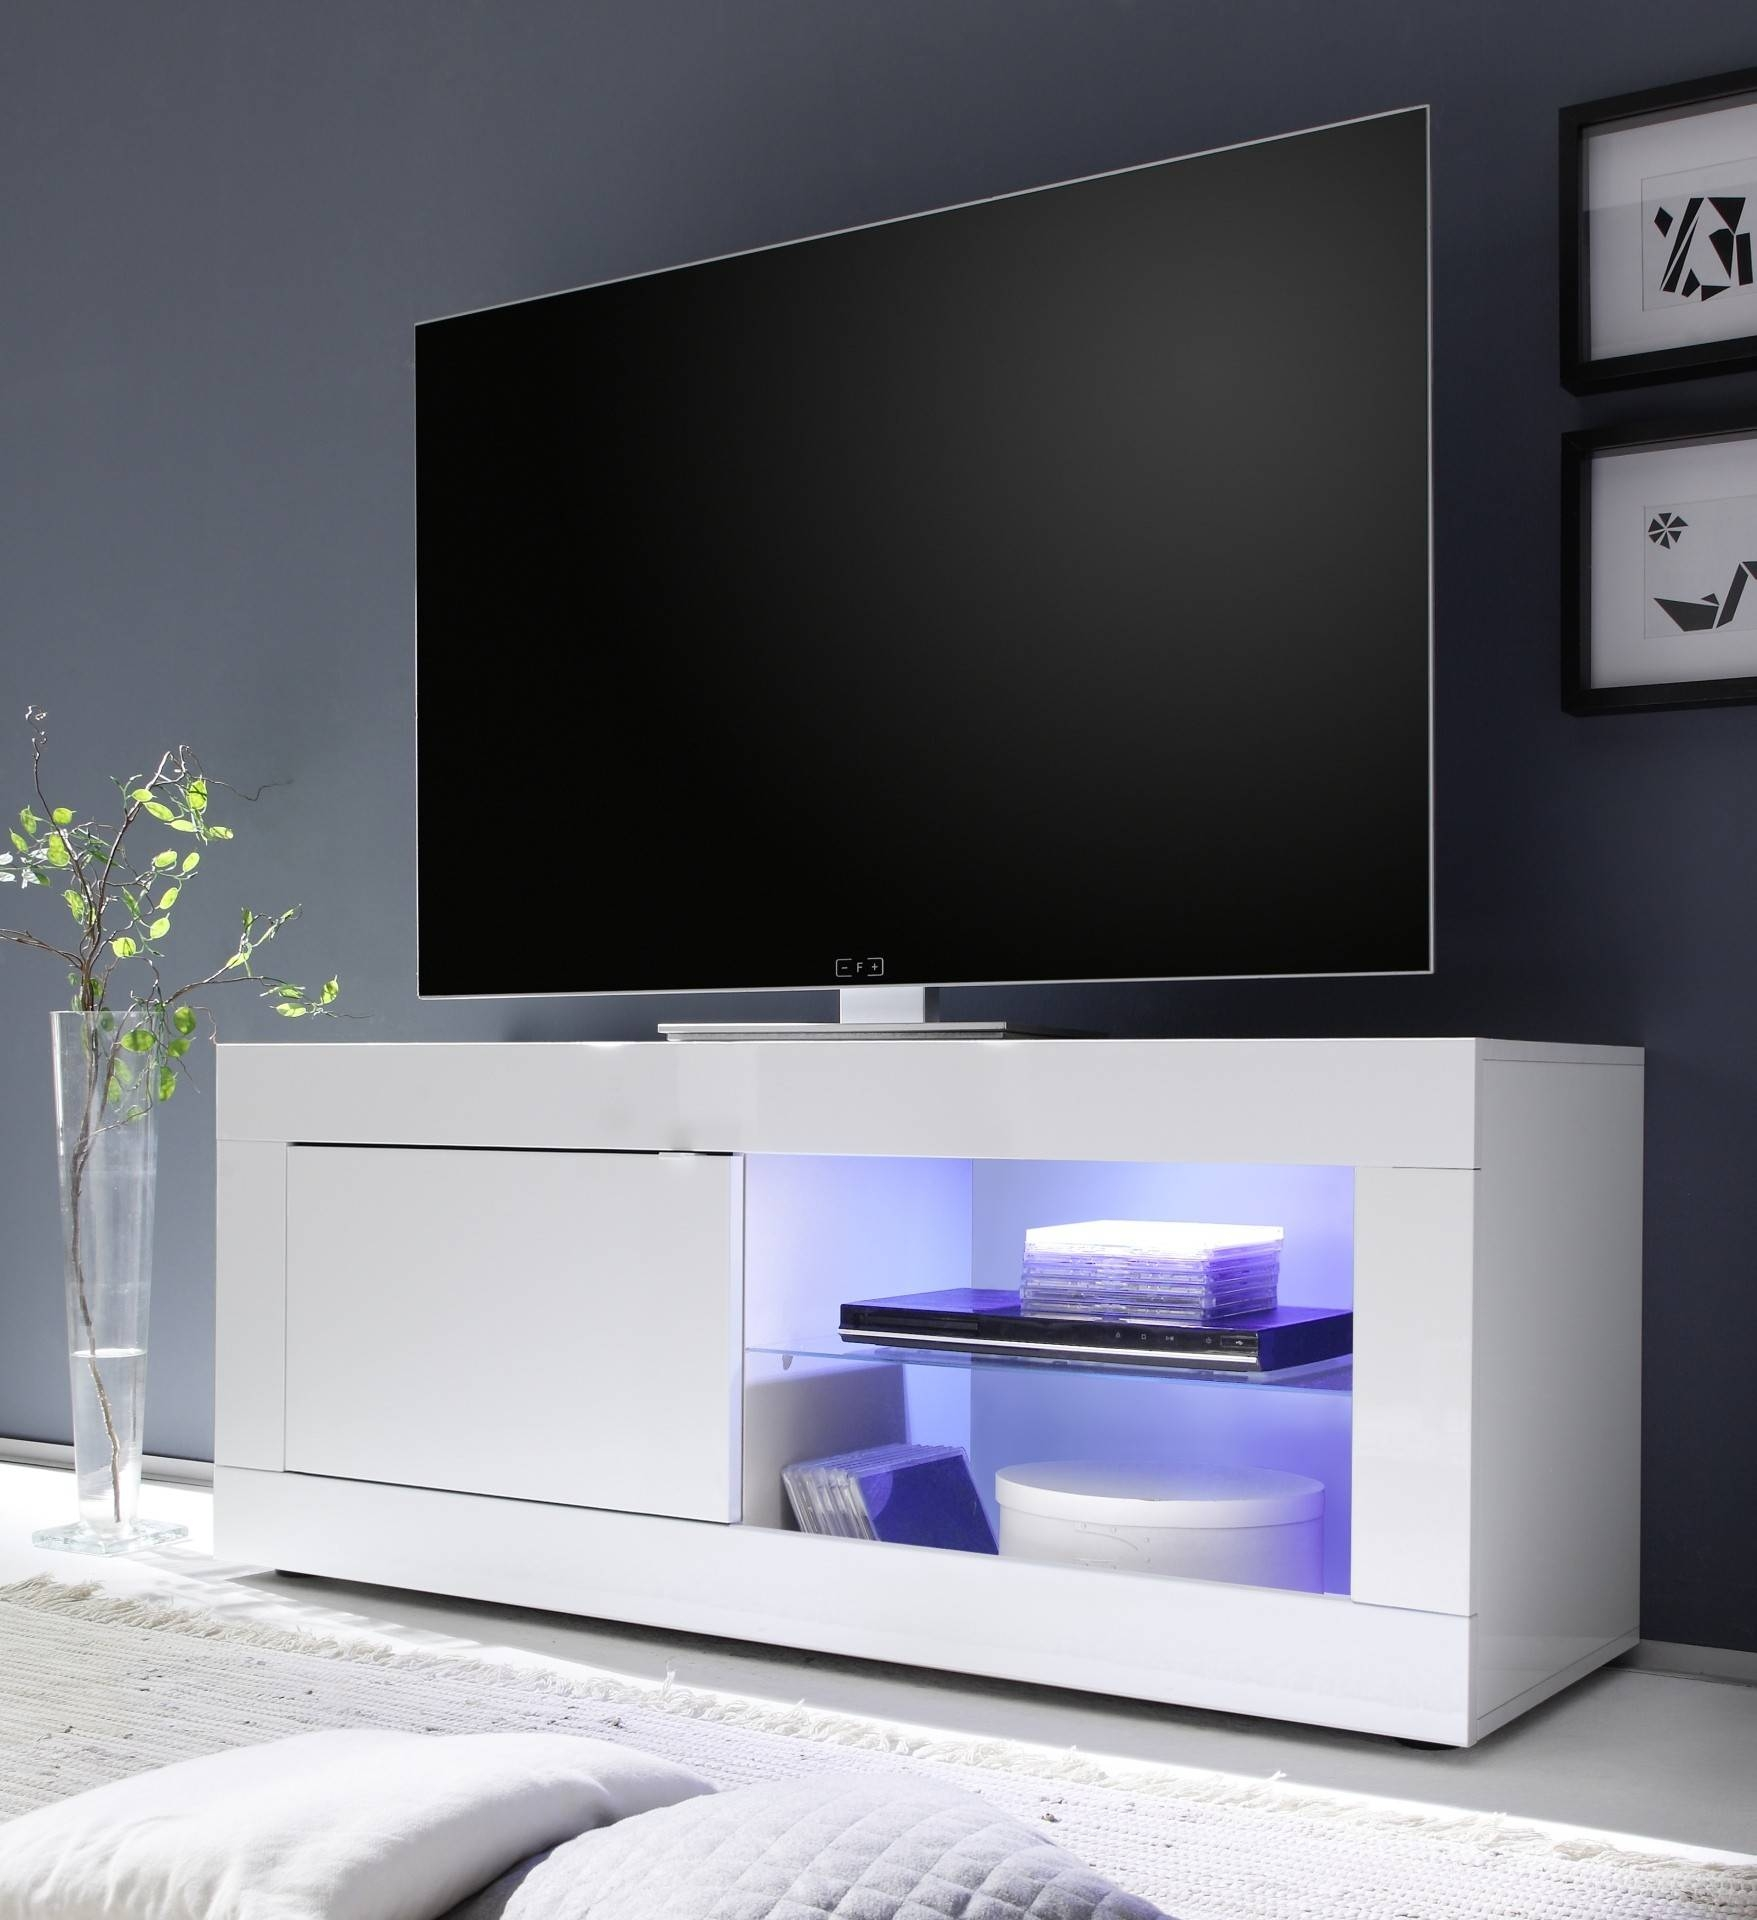 Bench. High Gloss Tv Bench: Eos Large High Gloss Tv Unit Stands throughout High Gloss White Tv Cabinets (Image 1 of 15)